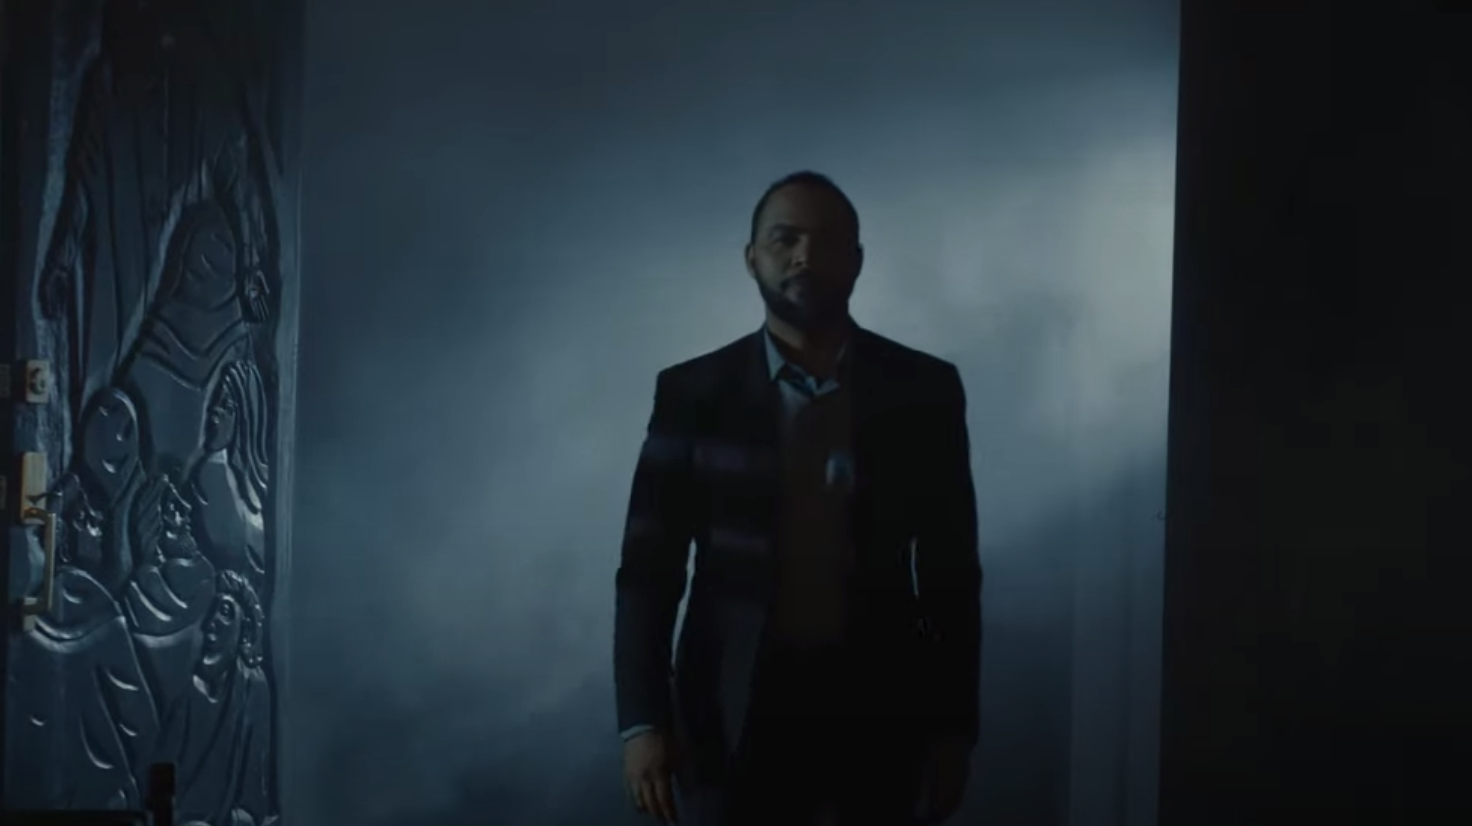 This is Ramsey Nouah as the villain in what movie?